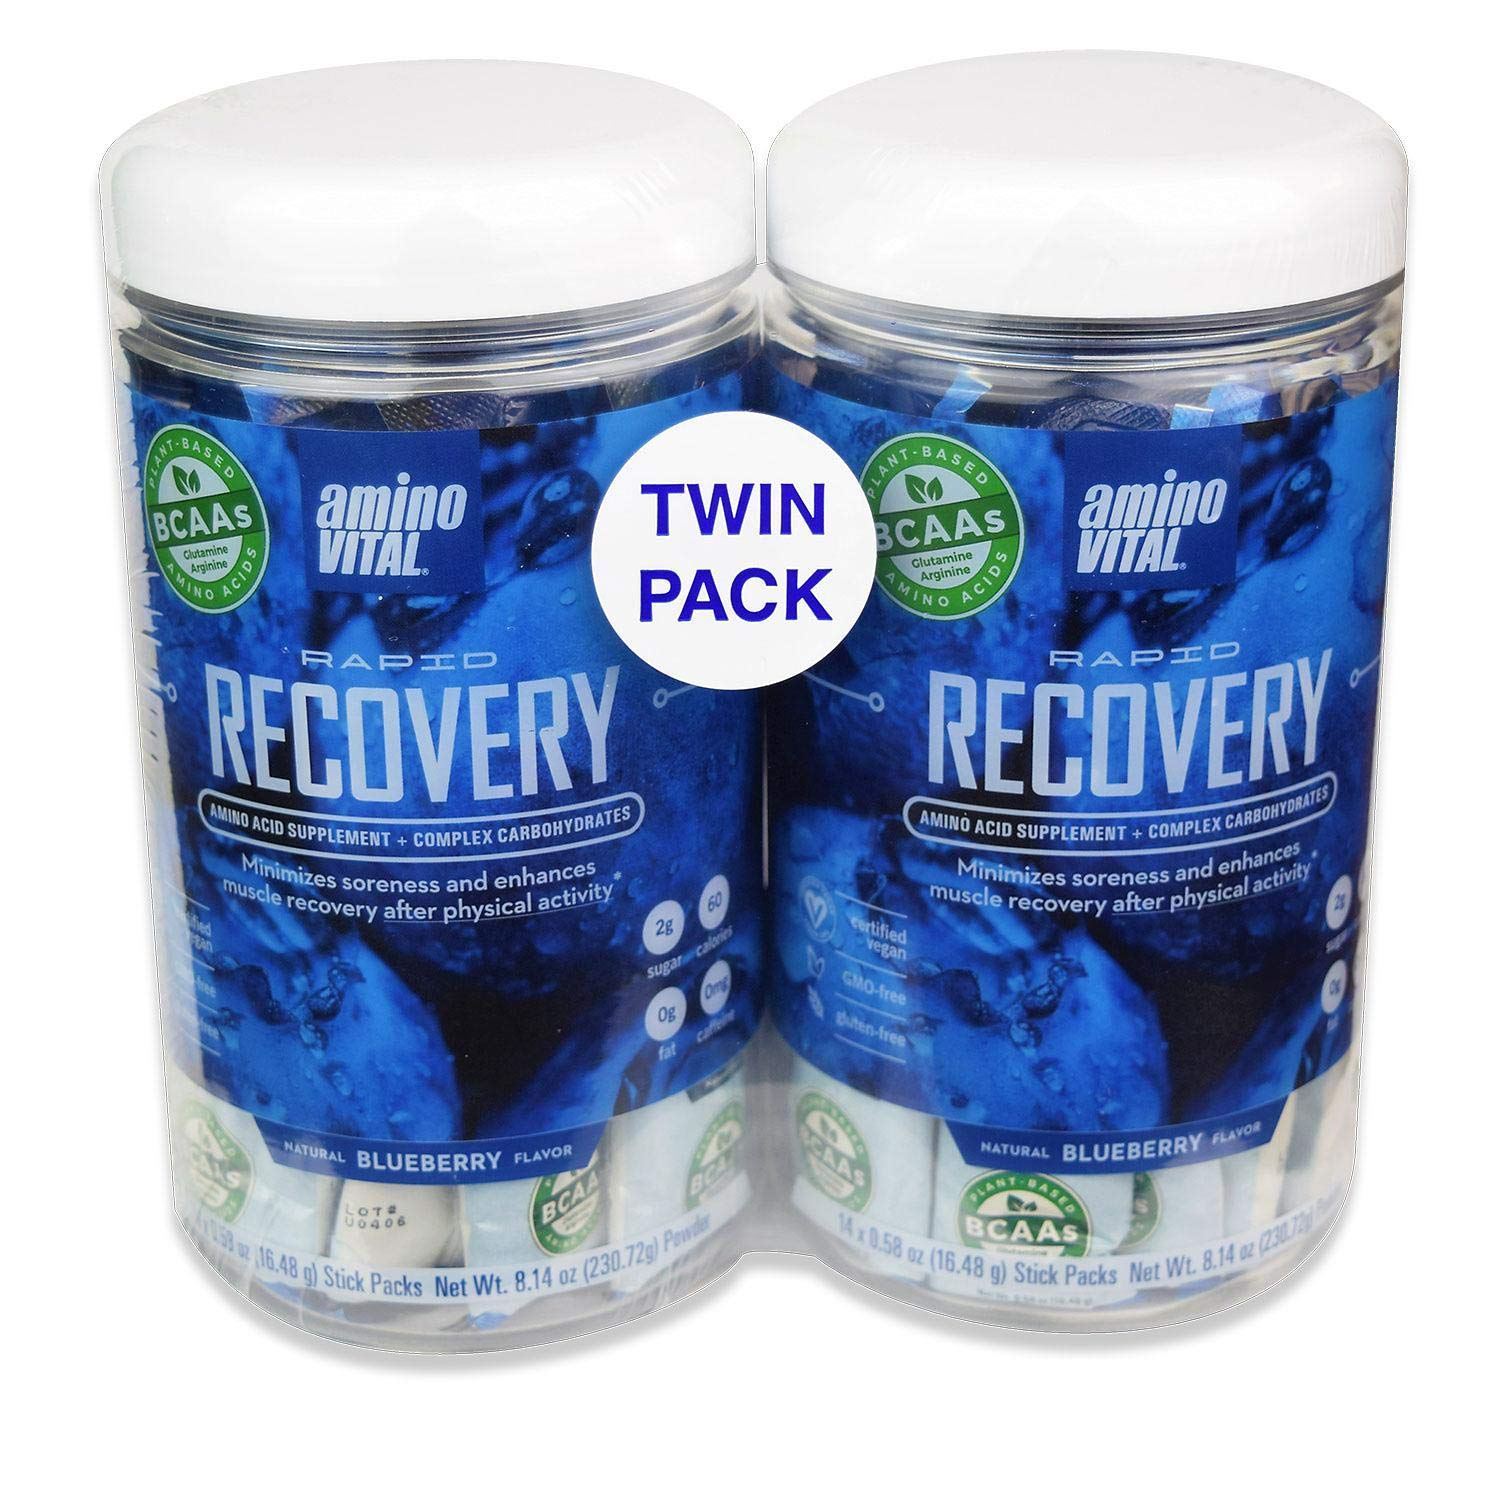 Amino Vital Rapid Recovery Twin Pack, Natural Blueberry Powdered Single-Serving Drink Mix 28 pk. (Pack of 3) A1